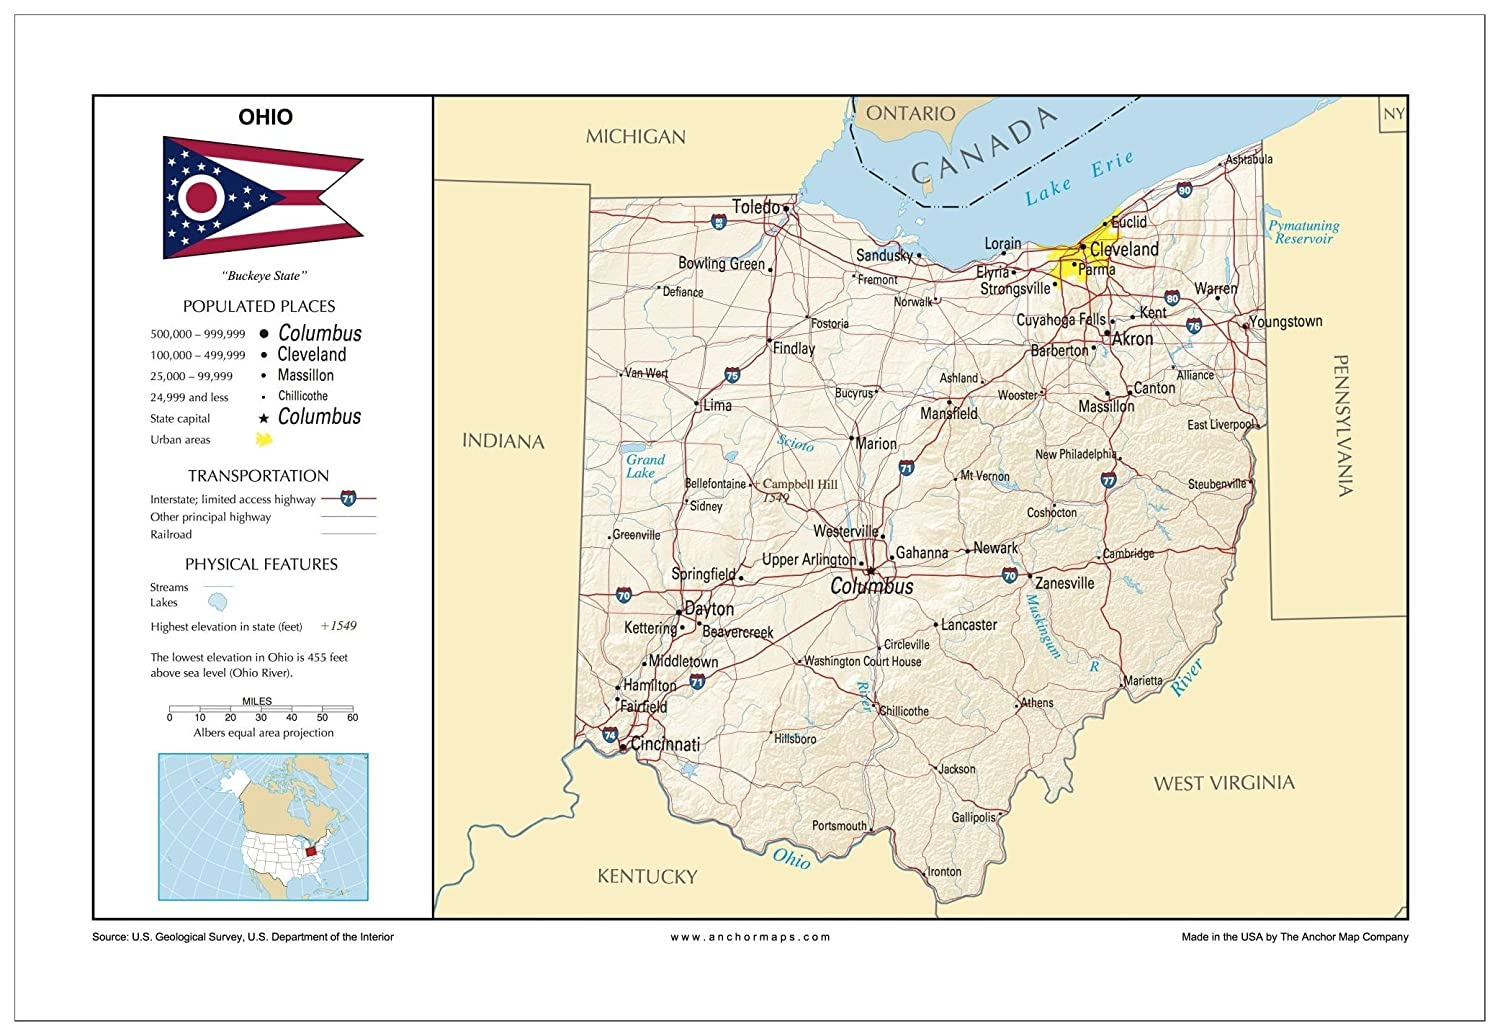 Amazon.com : 13x19 Ohio General Reference Wall Map - Anchor Maps USA ...